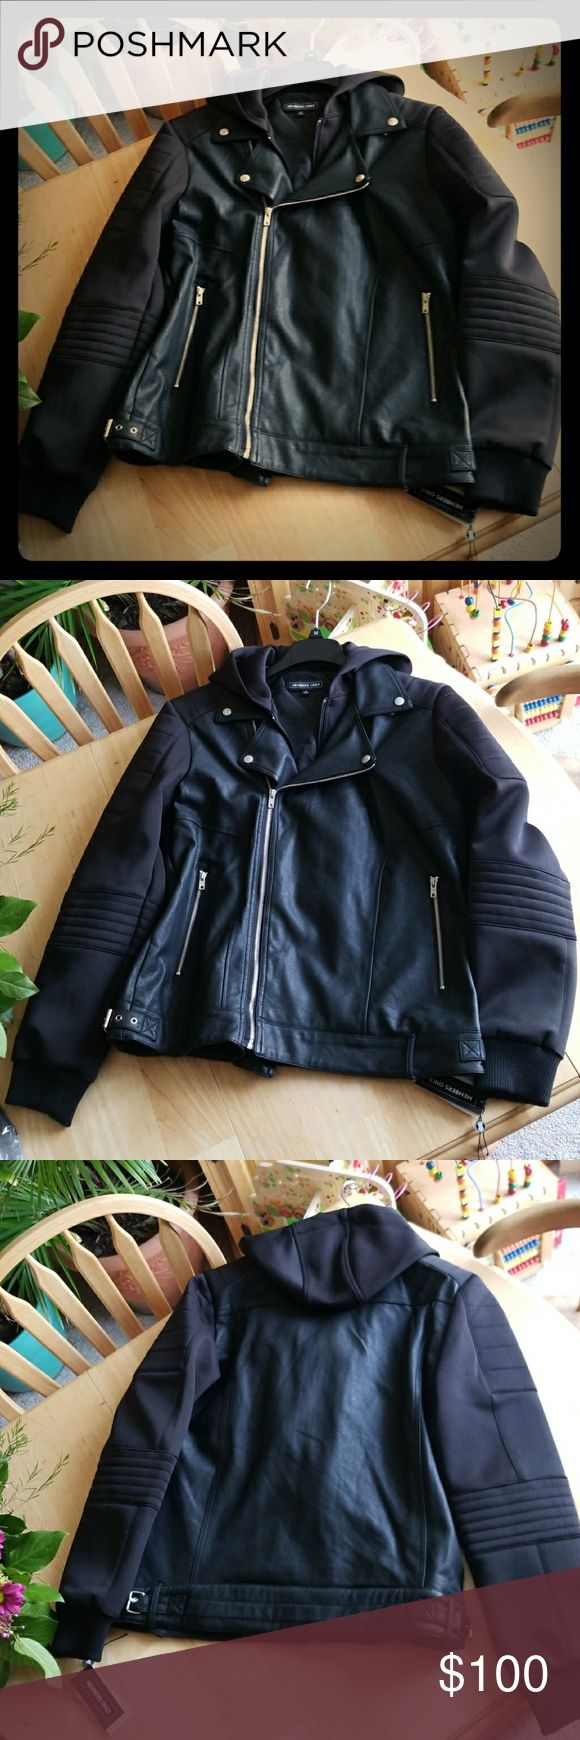 Members Only hooded faux leather biker jacket Hey guys, here's a super cool looking faux leather biker jacket! And it's hooded! Comes in a Mens Medium. Thanks for taking a peek :) Members Only Jackets & Coats